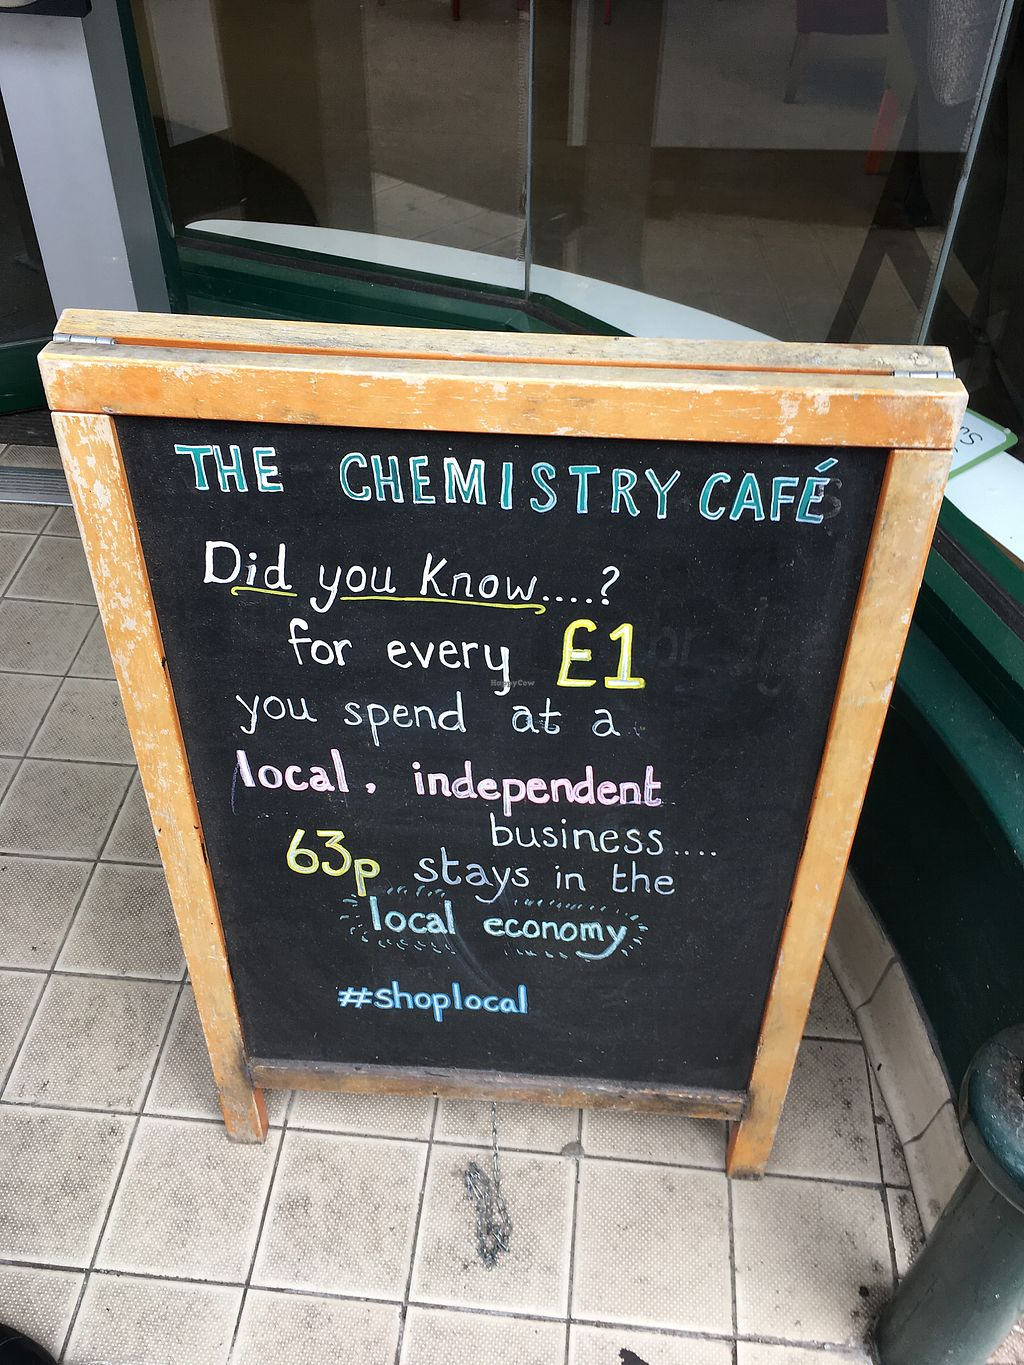 """Photo of The Chemistry Cafe  by <a href=""""/members/profile/Spaghetti_monster"""">Spaghetti_monster</a> <br/>shop local <br/> July 24, 2017  - <a href='/contact/abuse/image/69616/284381'>Report</a>"""